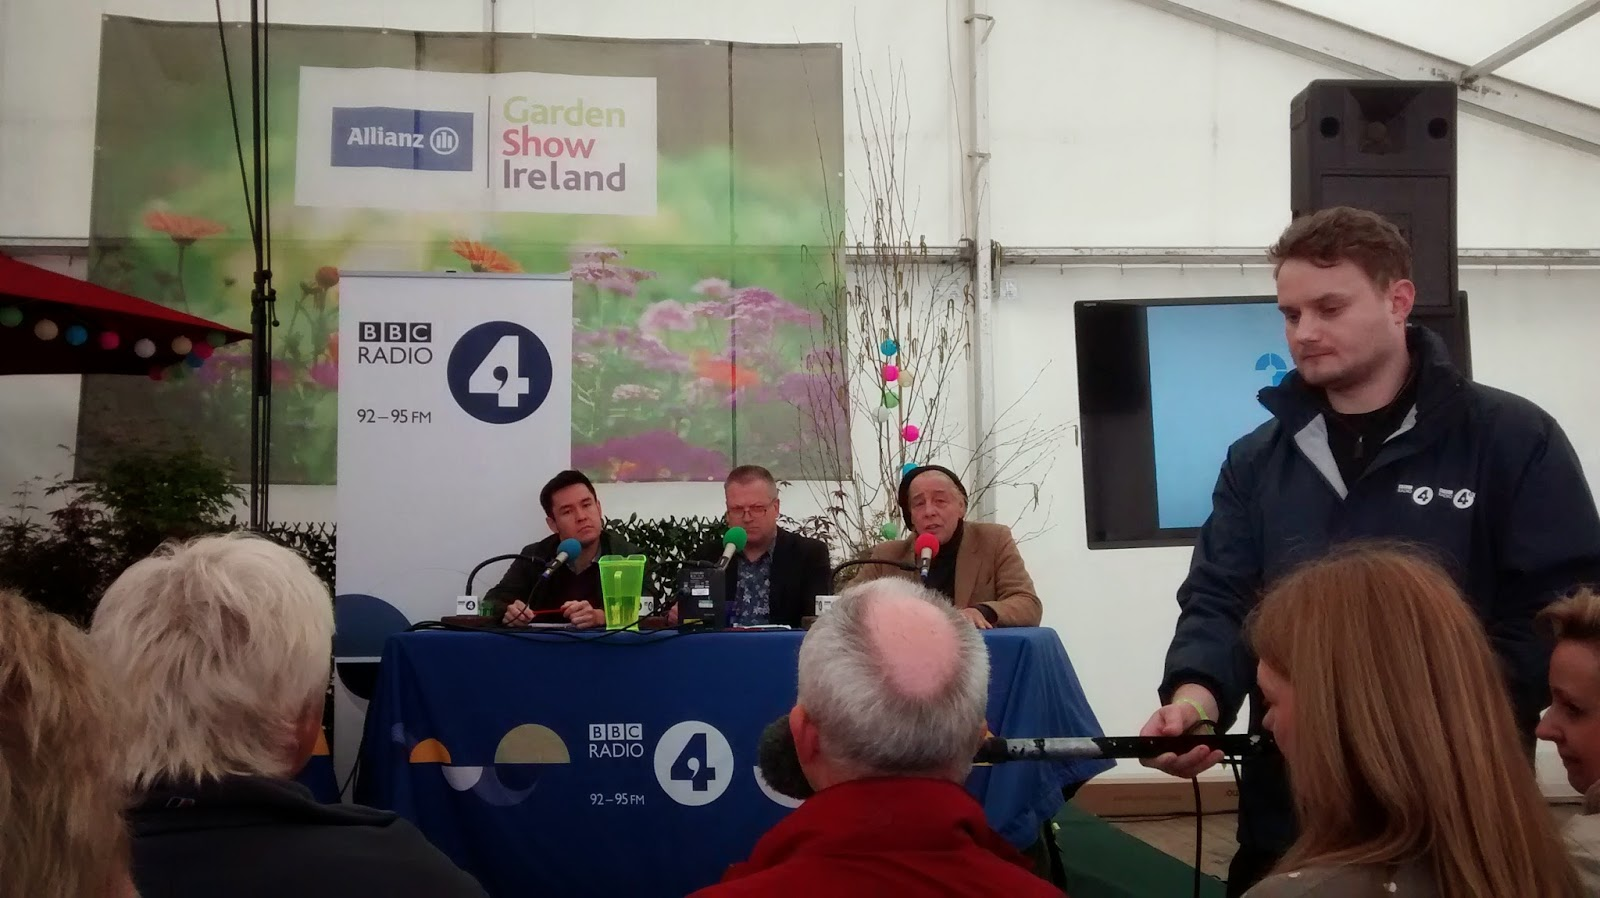 Prepossessing Gardening Matters Bbc Gardeners Question Time At The Antrim  With Lovely Bbc Gardeners Question Time At The Antrim Garden Show With Cool Ew Gardens Also Garden Path Light In Addition Fairy Garden Statue And Hanging A Garden Gate As Well As Garden Arbours Bq Additionally Lindos Gardens Apartments From Inishindiegardenmattersblogspotcom With   Lovely Gardening Matters Bbc Gardeners Question Time At The Antrim  With Cool Bbc Gardeners Question Time At The Antrim Garden Show And Prepossessing Ew Gardens Also Garden Path Light In Addition Fairy Garden Statue From Inishindiegardenmattersblogspotcom